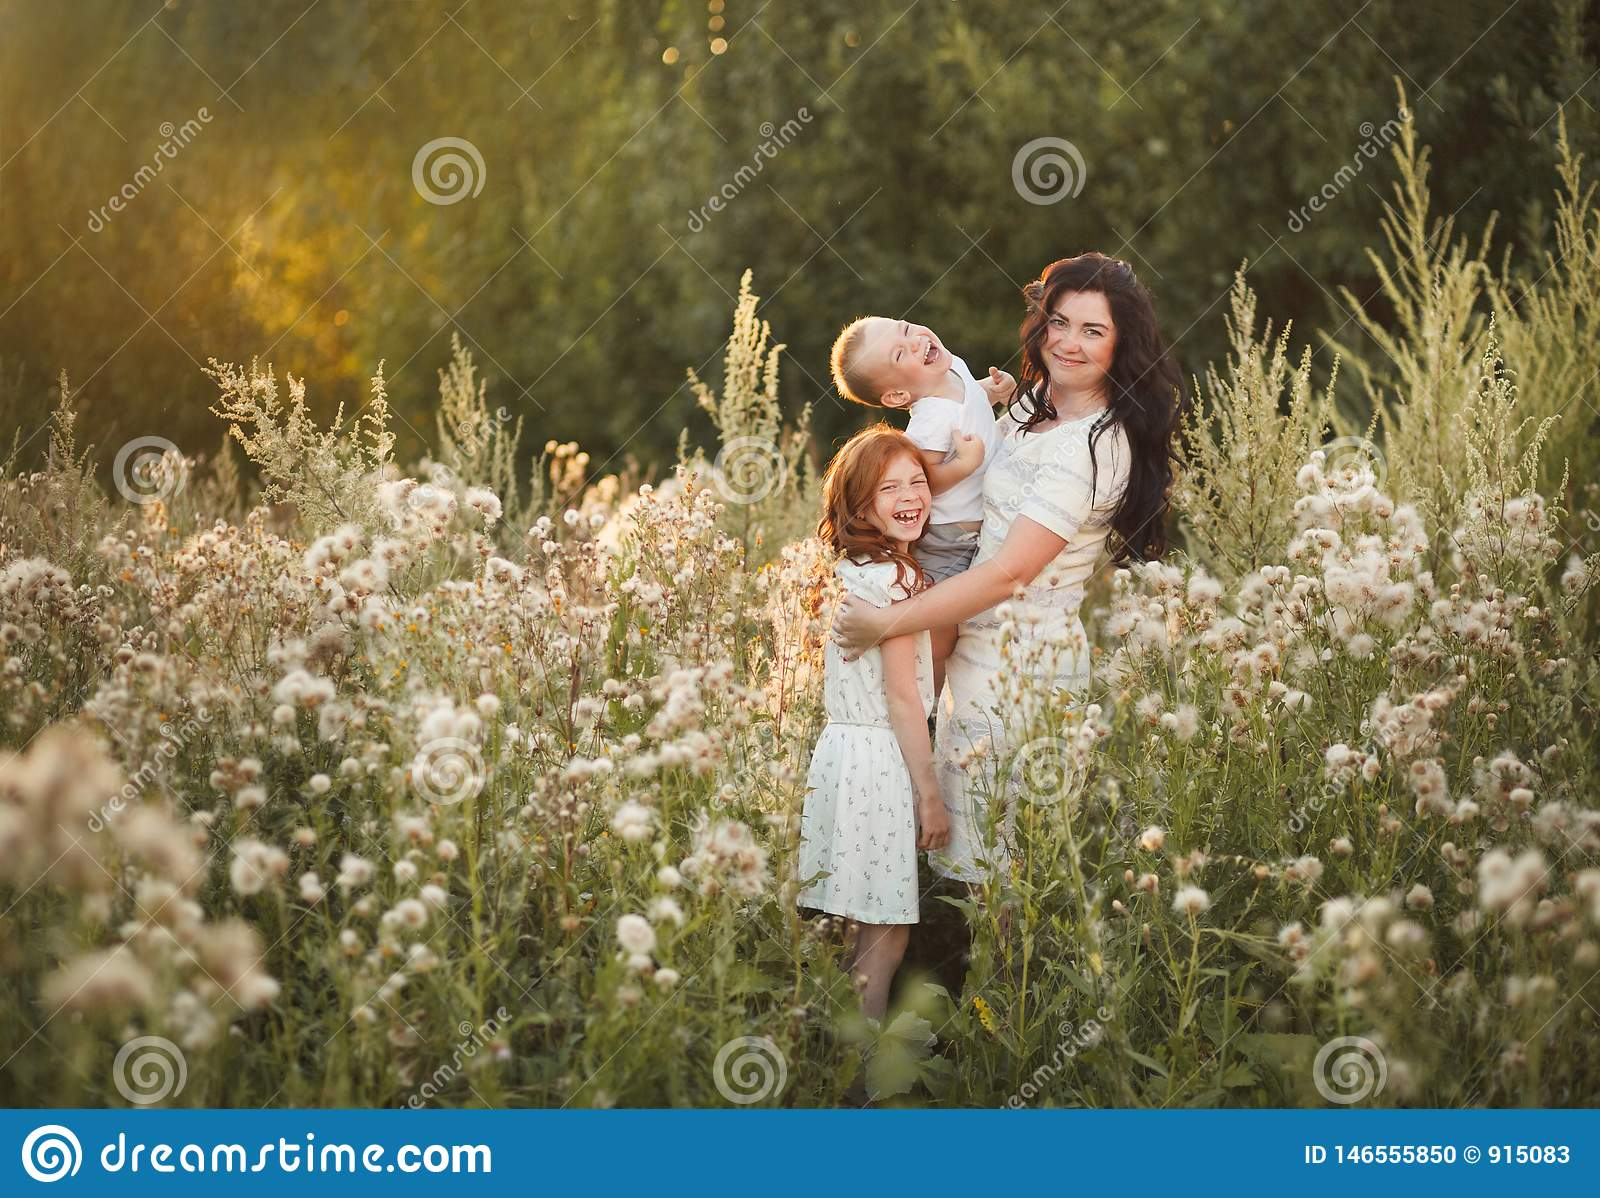 Portrait of happy family having fun outdoor. Concept of happy family, childhood, parenthood